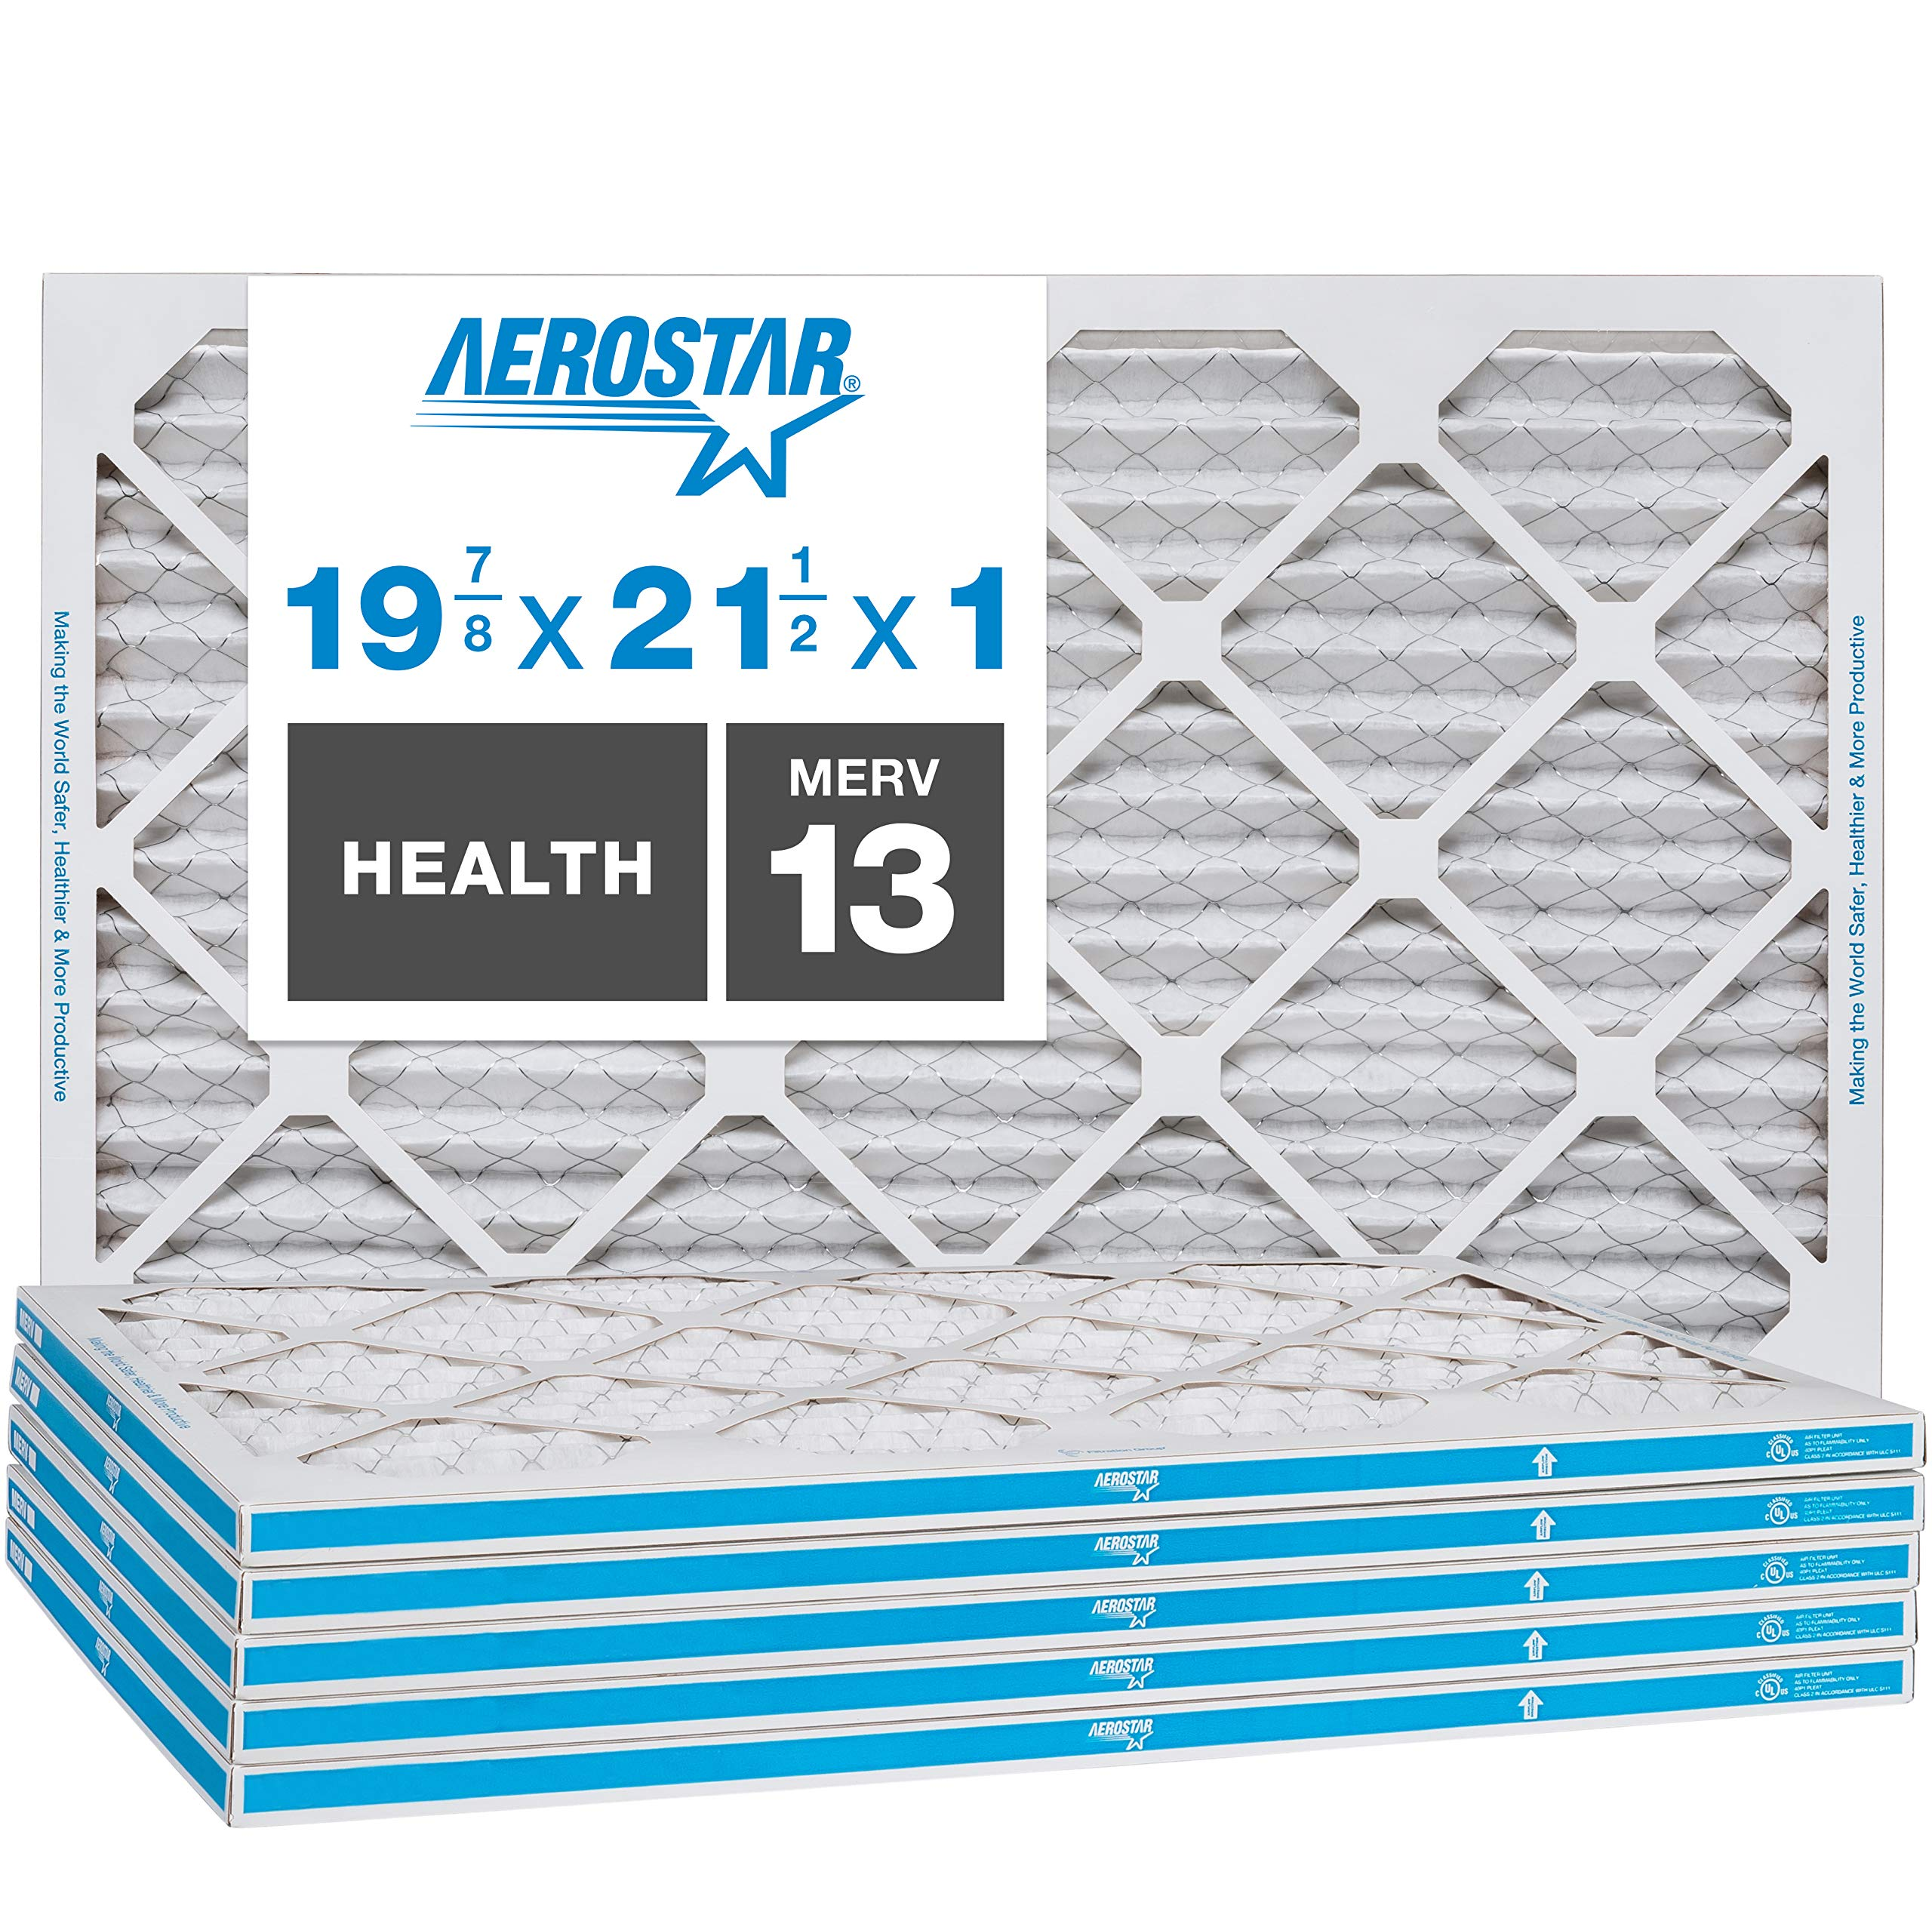 """Aerostar Home Max 19 7/8 x 21 1/2x1 MERV 13 Pleated Air Filter, Made in the USA, Captures Virus Particles, (Actual Size: 19 7/8""""x21 1/2""""x3/4""""), 6-Pack"""